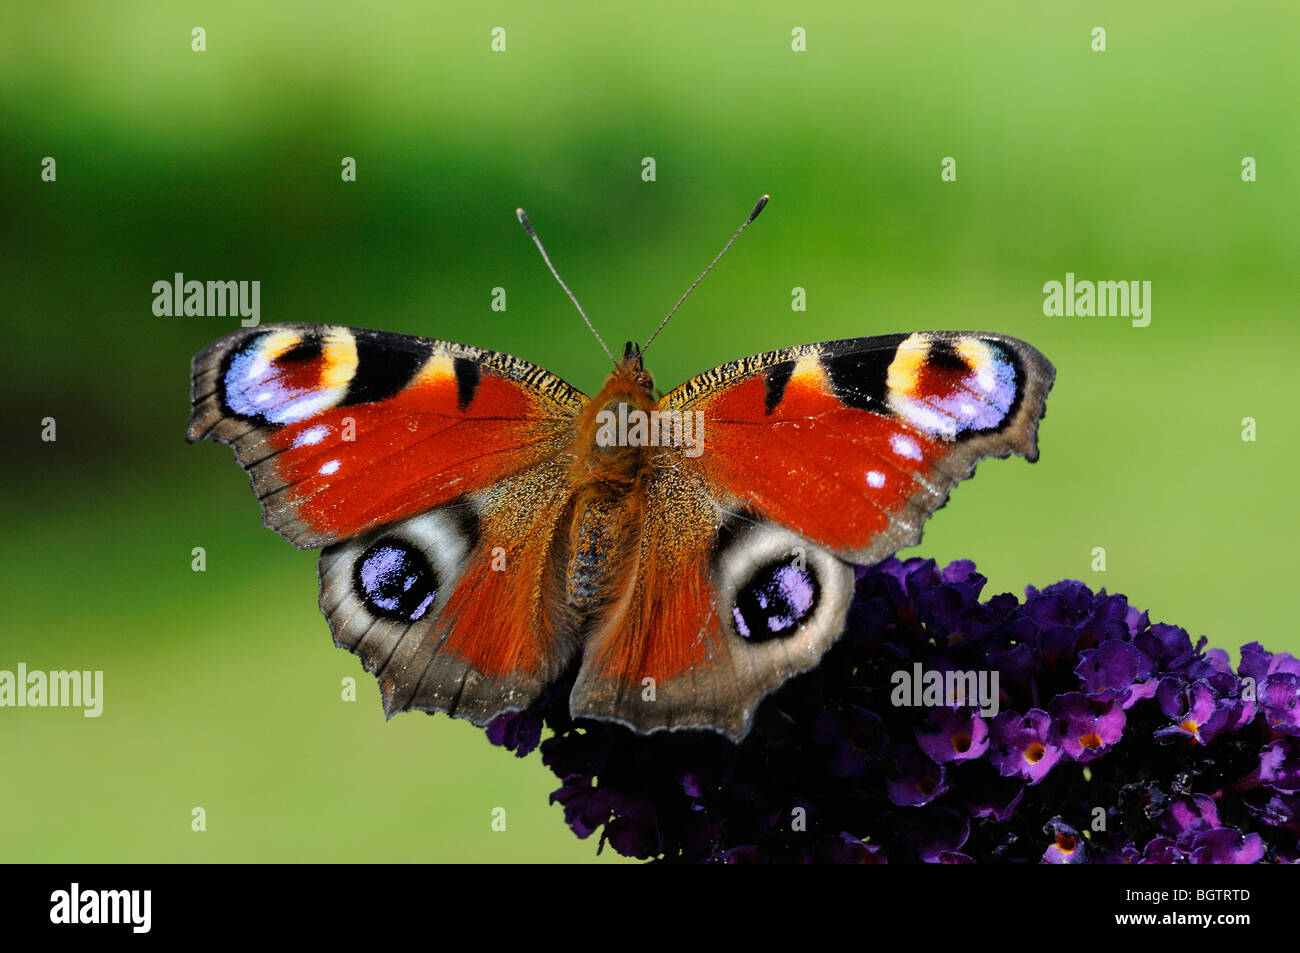 Peacock Butterfly (Inachis io) resting on buddleia flower, Oxfordshire, UK. Stock Photo